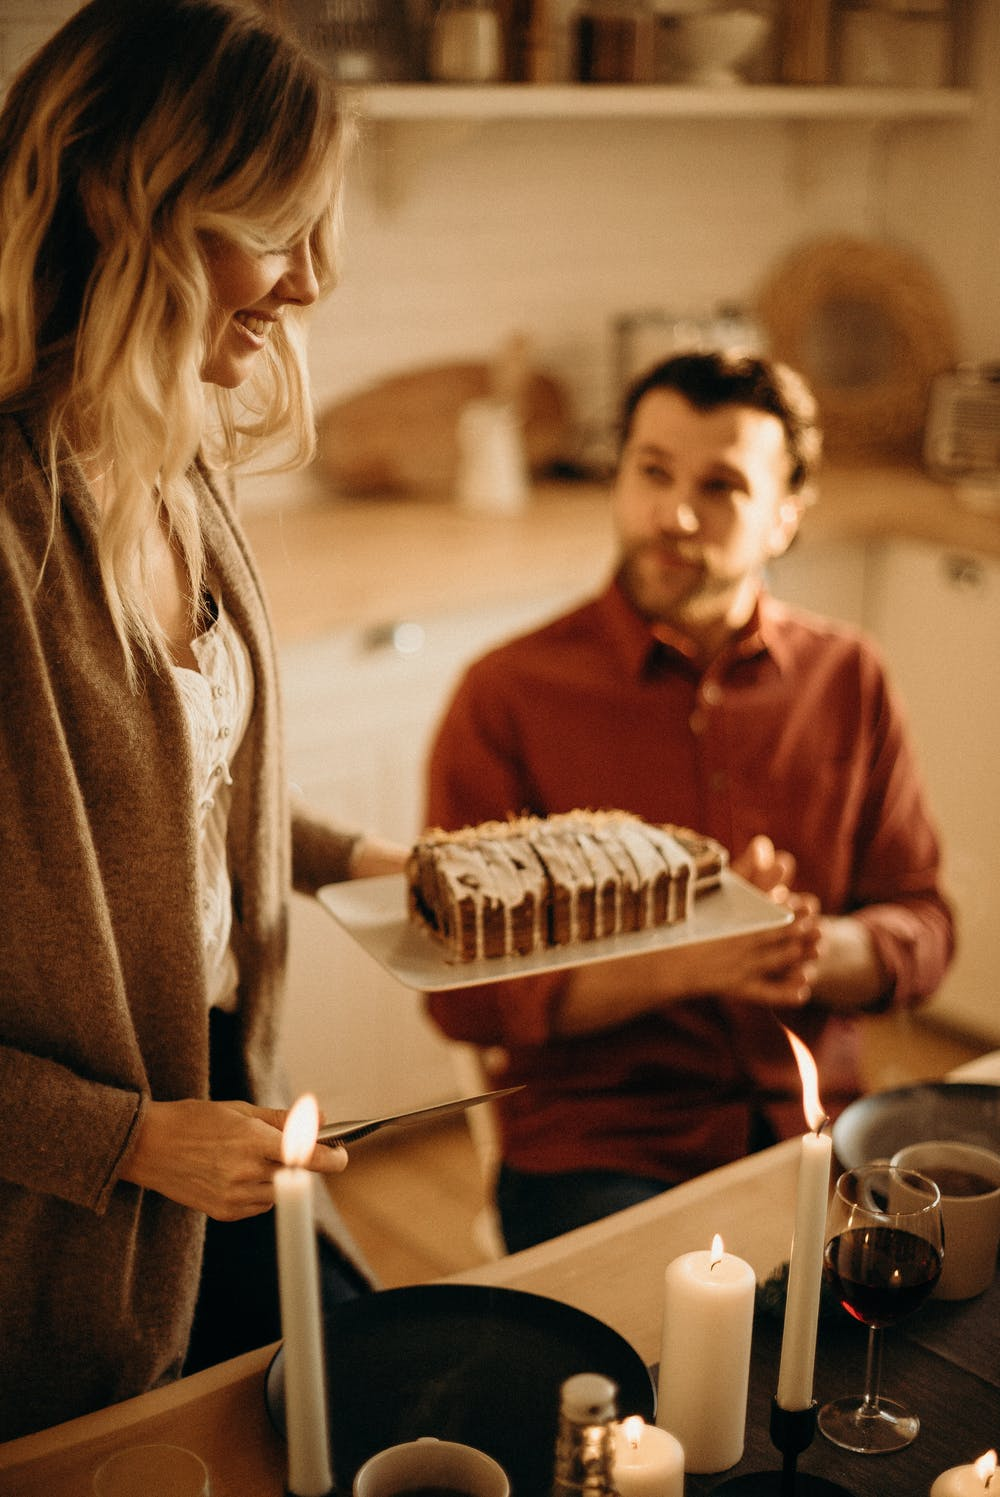 Woman standing while serving cake and the man sitting near a table. | Photo: Pexels